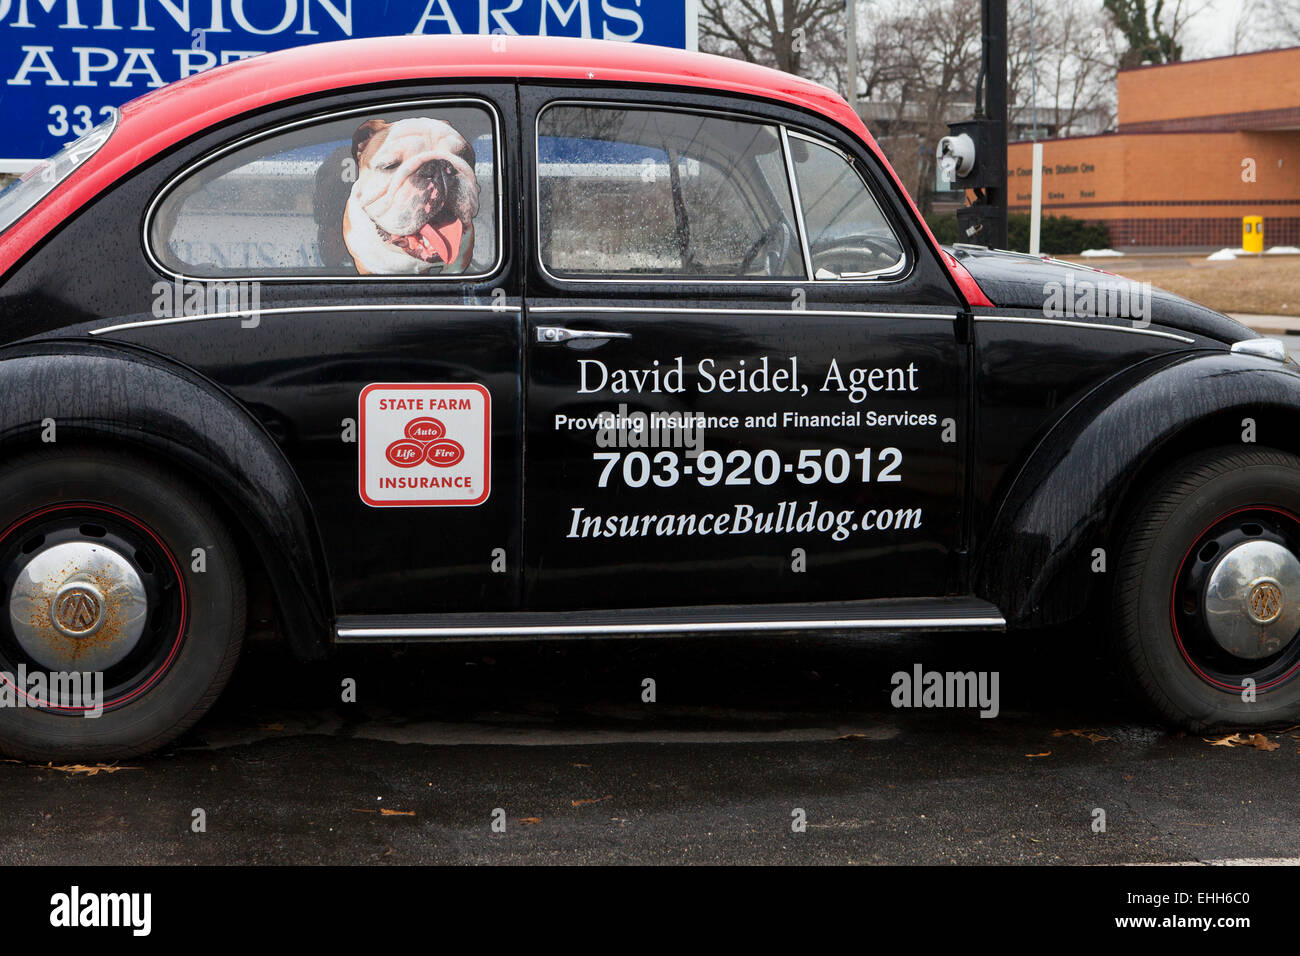 State Farm Insurance agent ad on VW 1970s vintage beetle ...